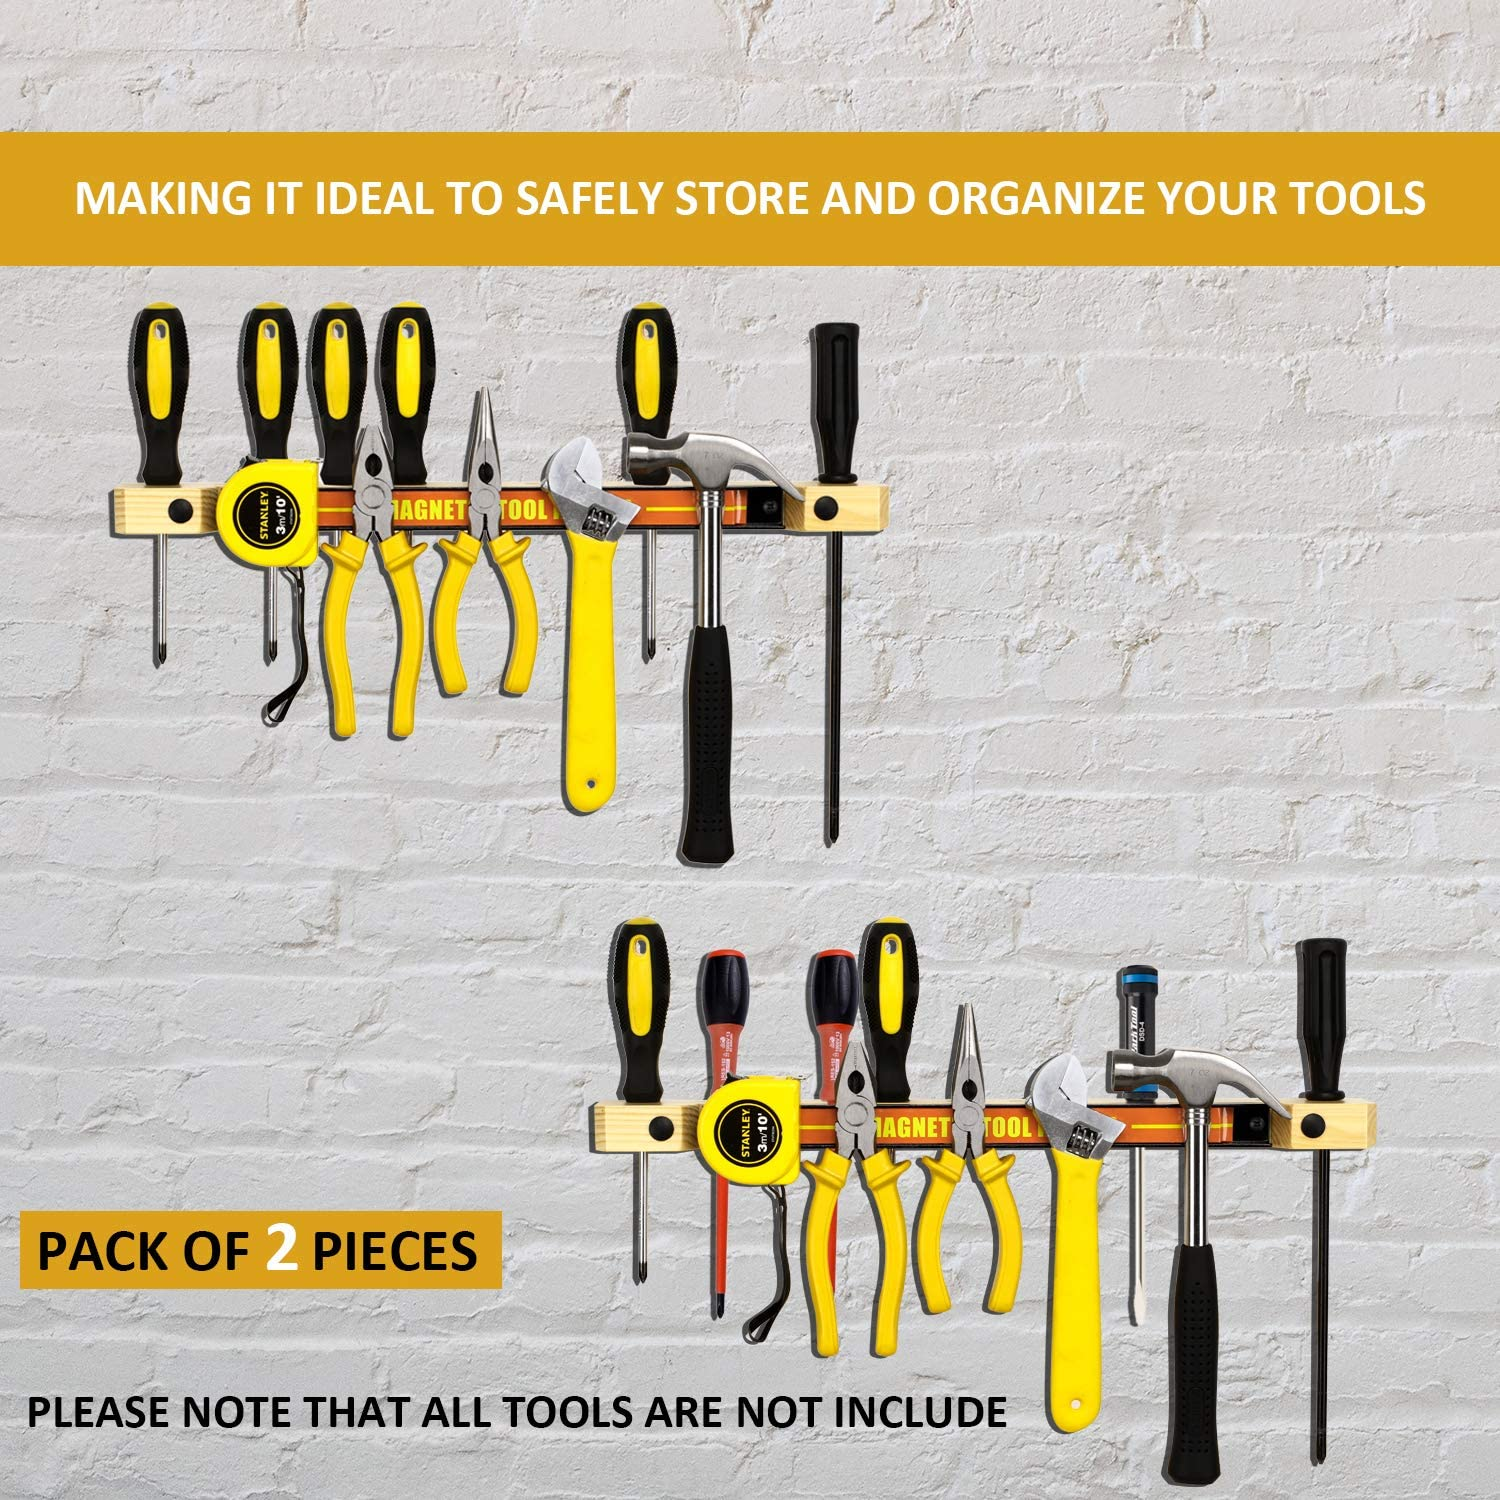 Wall Mounted Tool Storage with 12 Magnetic Tool Holder Tools not Include simesove Metal Magnet Tool Organizer Rack//Strip,Wooden Tool Holders Organizers for Screwdriver